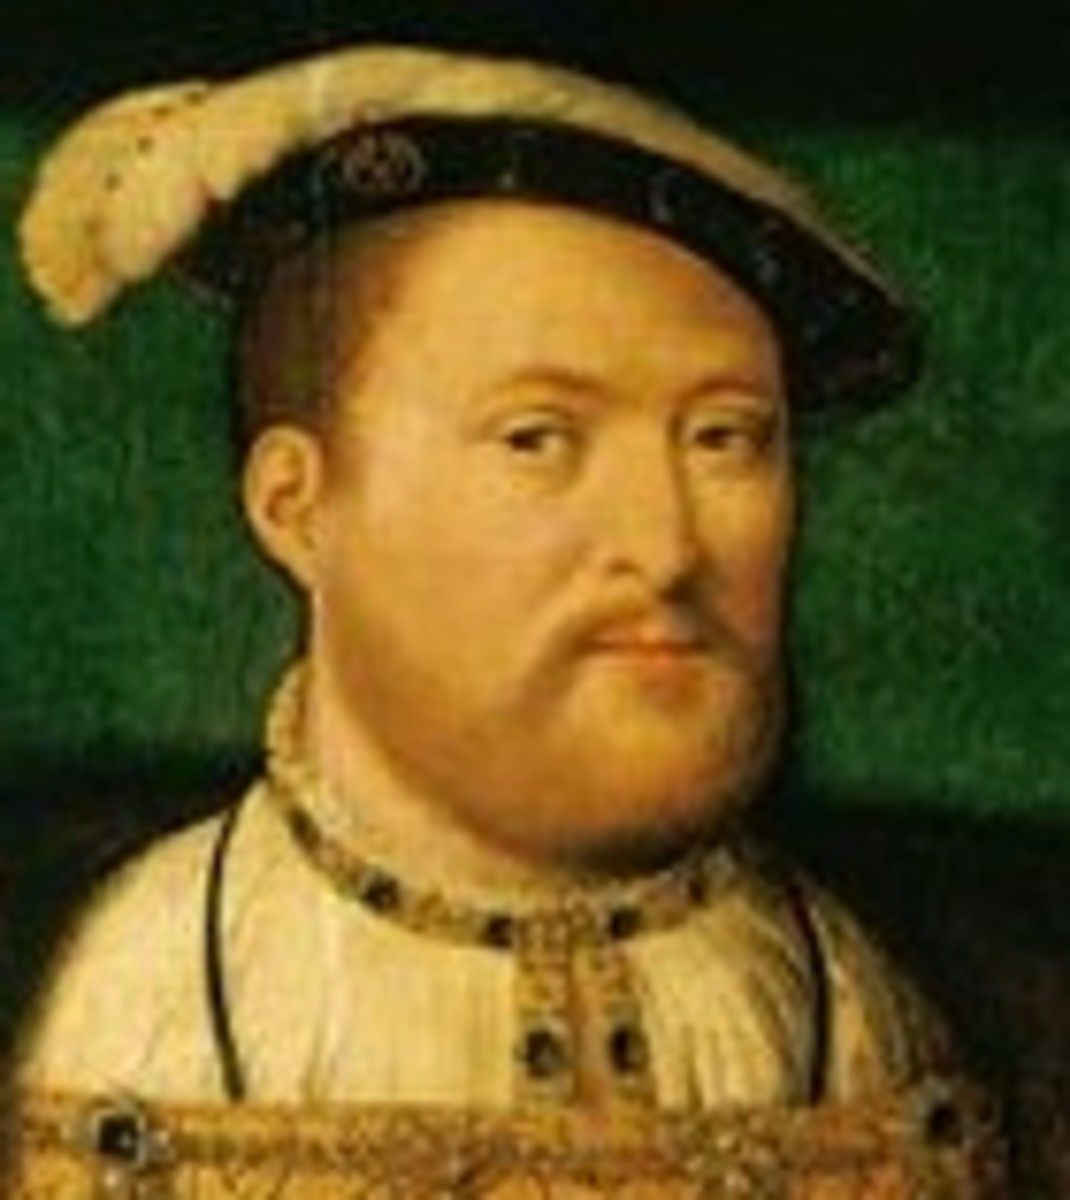 Tudor royals typically had red hair.